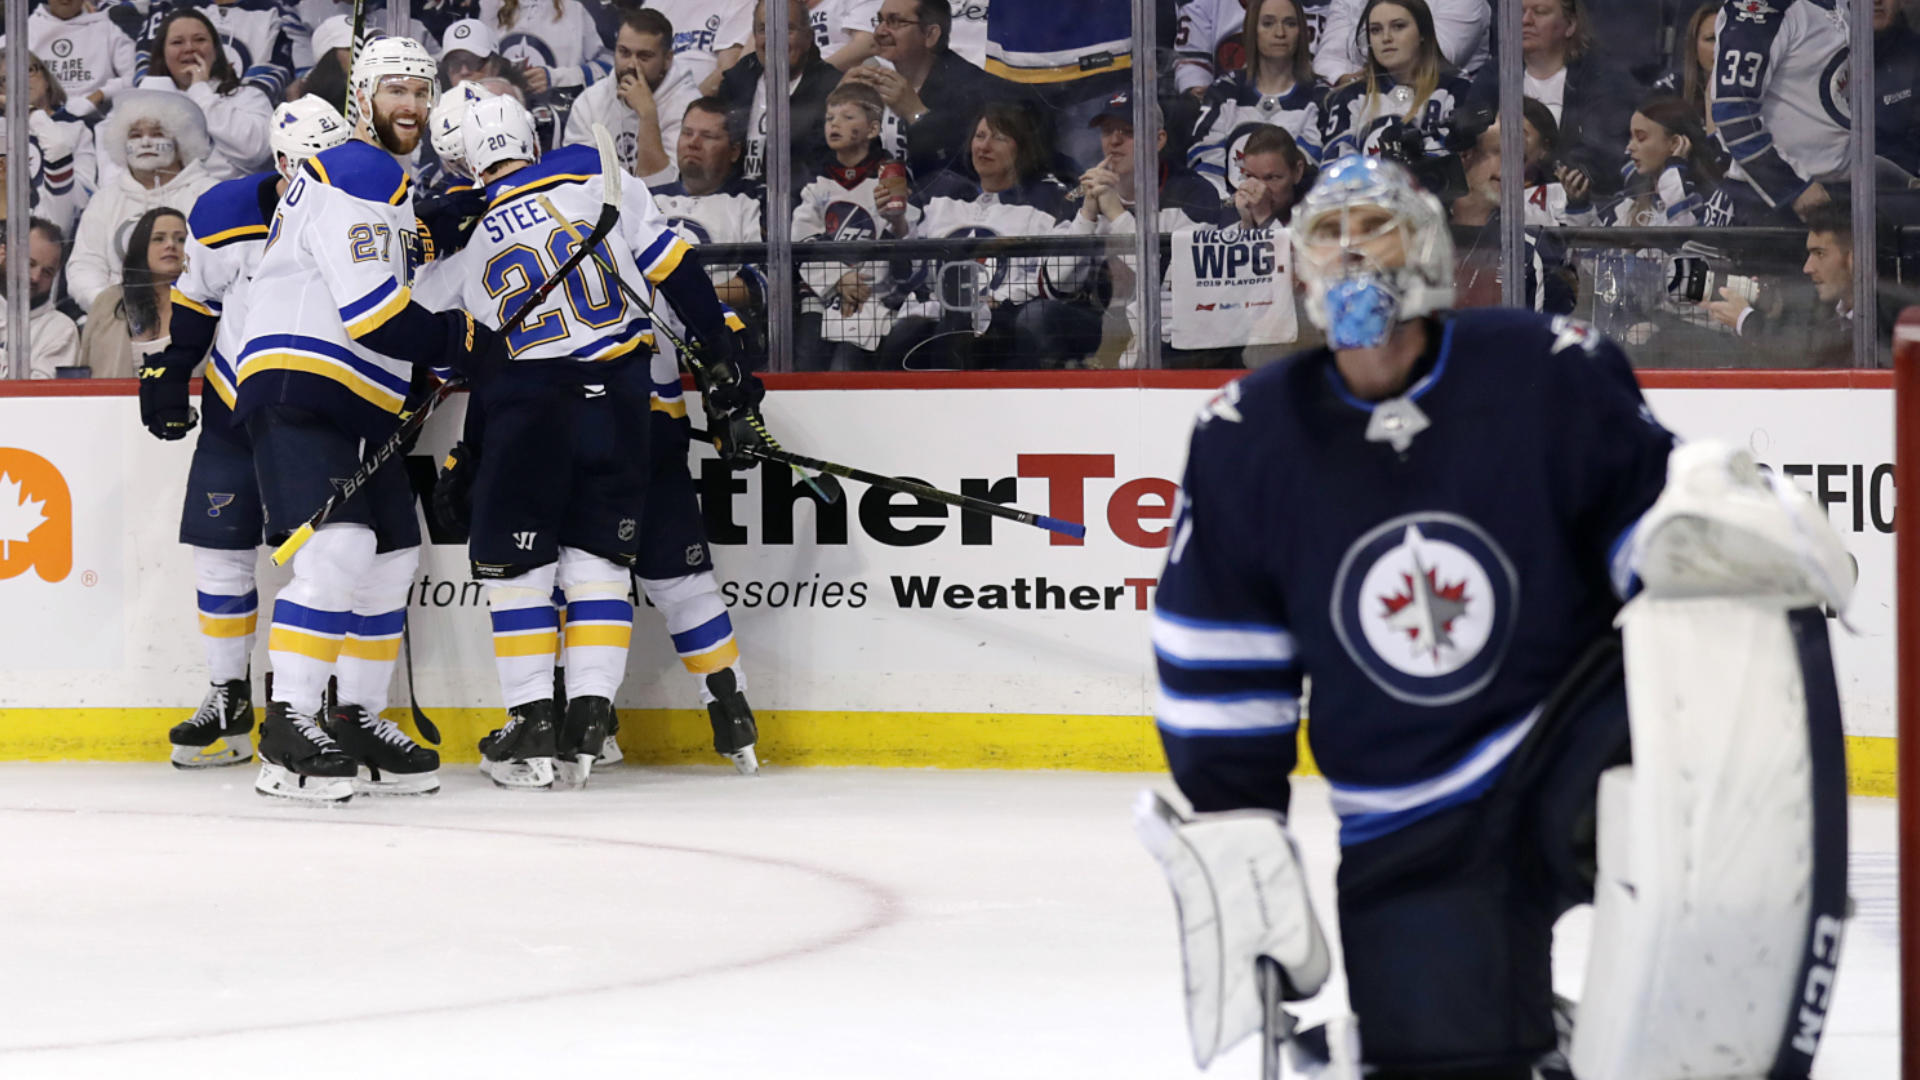 Stanley Cup Playoffs results: Hurricanes pull even with Capitals; Blues stun Jets with comeback; Sharks stay alive